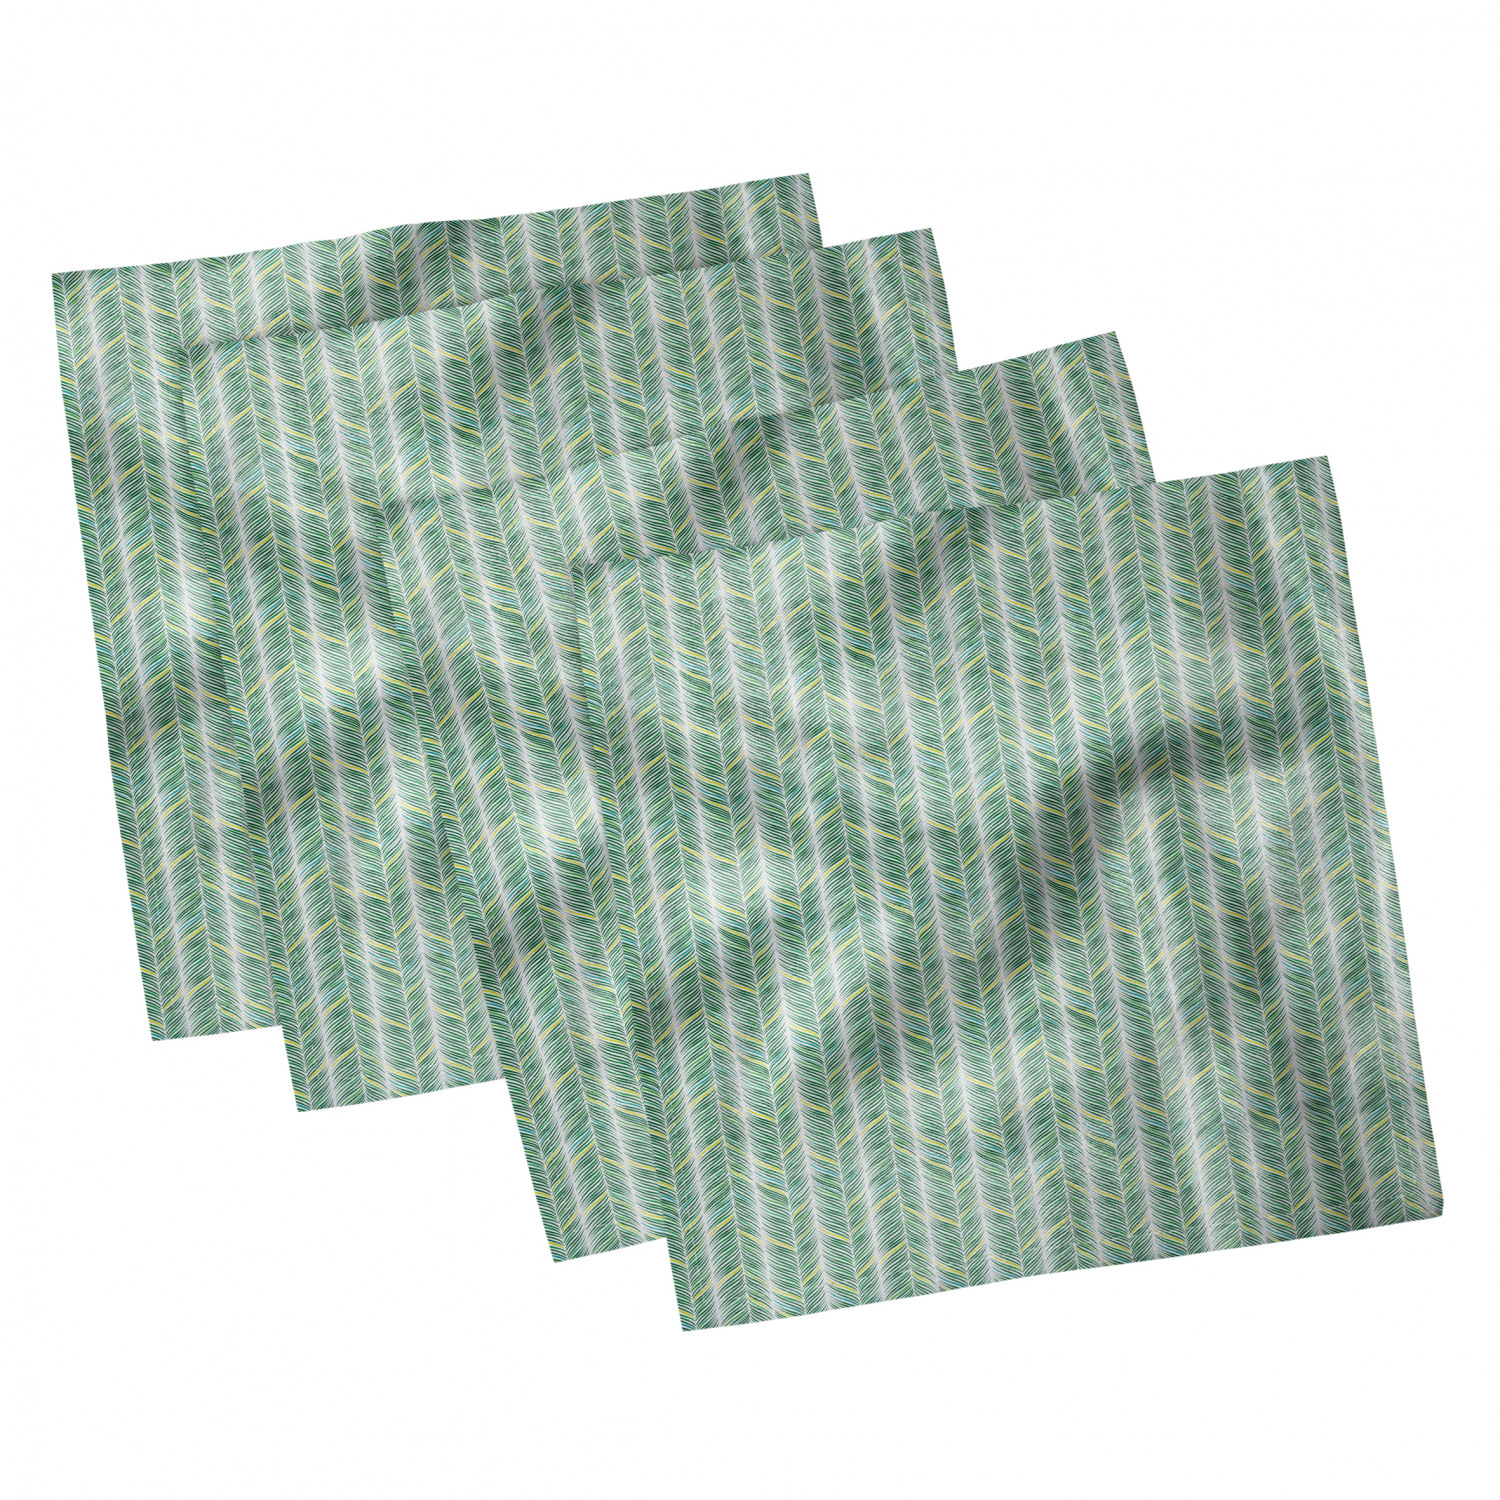 thumbnail 109 - Ambesonne-Leaves-Forest-Decorative-Satin-Napkins-Set-of-4-Party-Dinner-Fabric